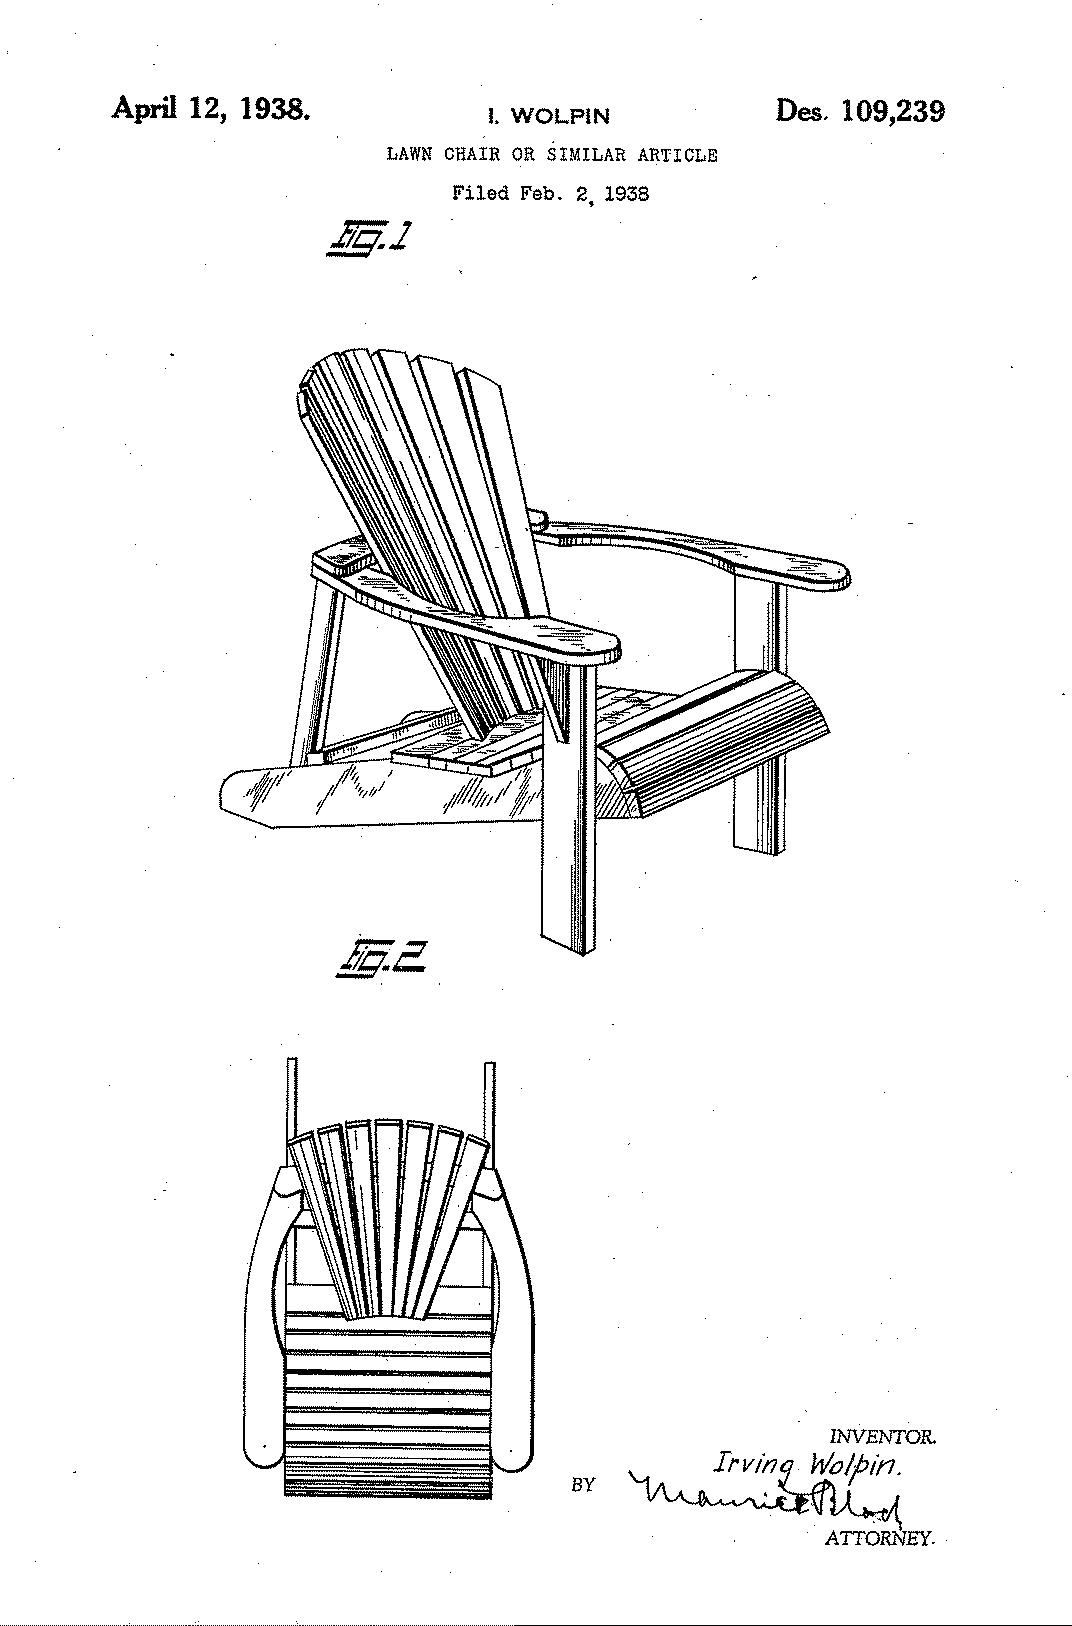 How the Adirondack Chair Became the Feel-Good Recliner That Cures What Ails You